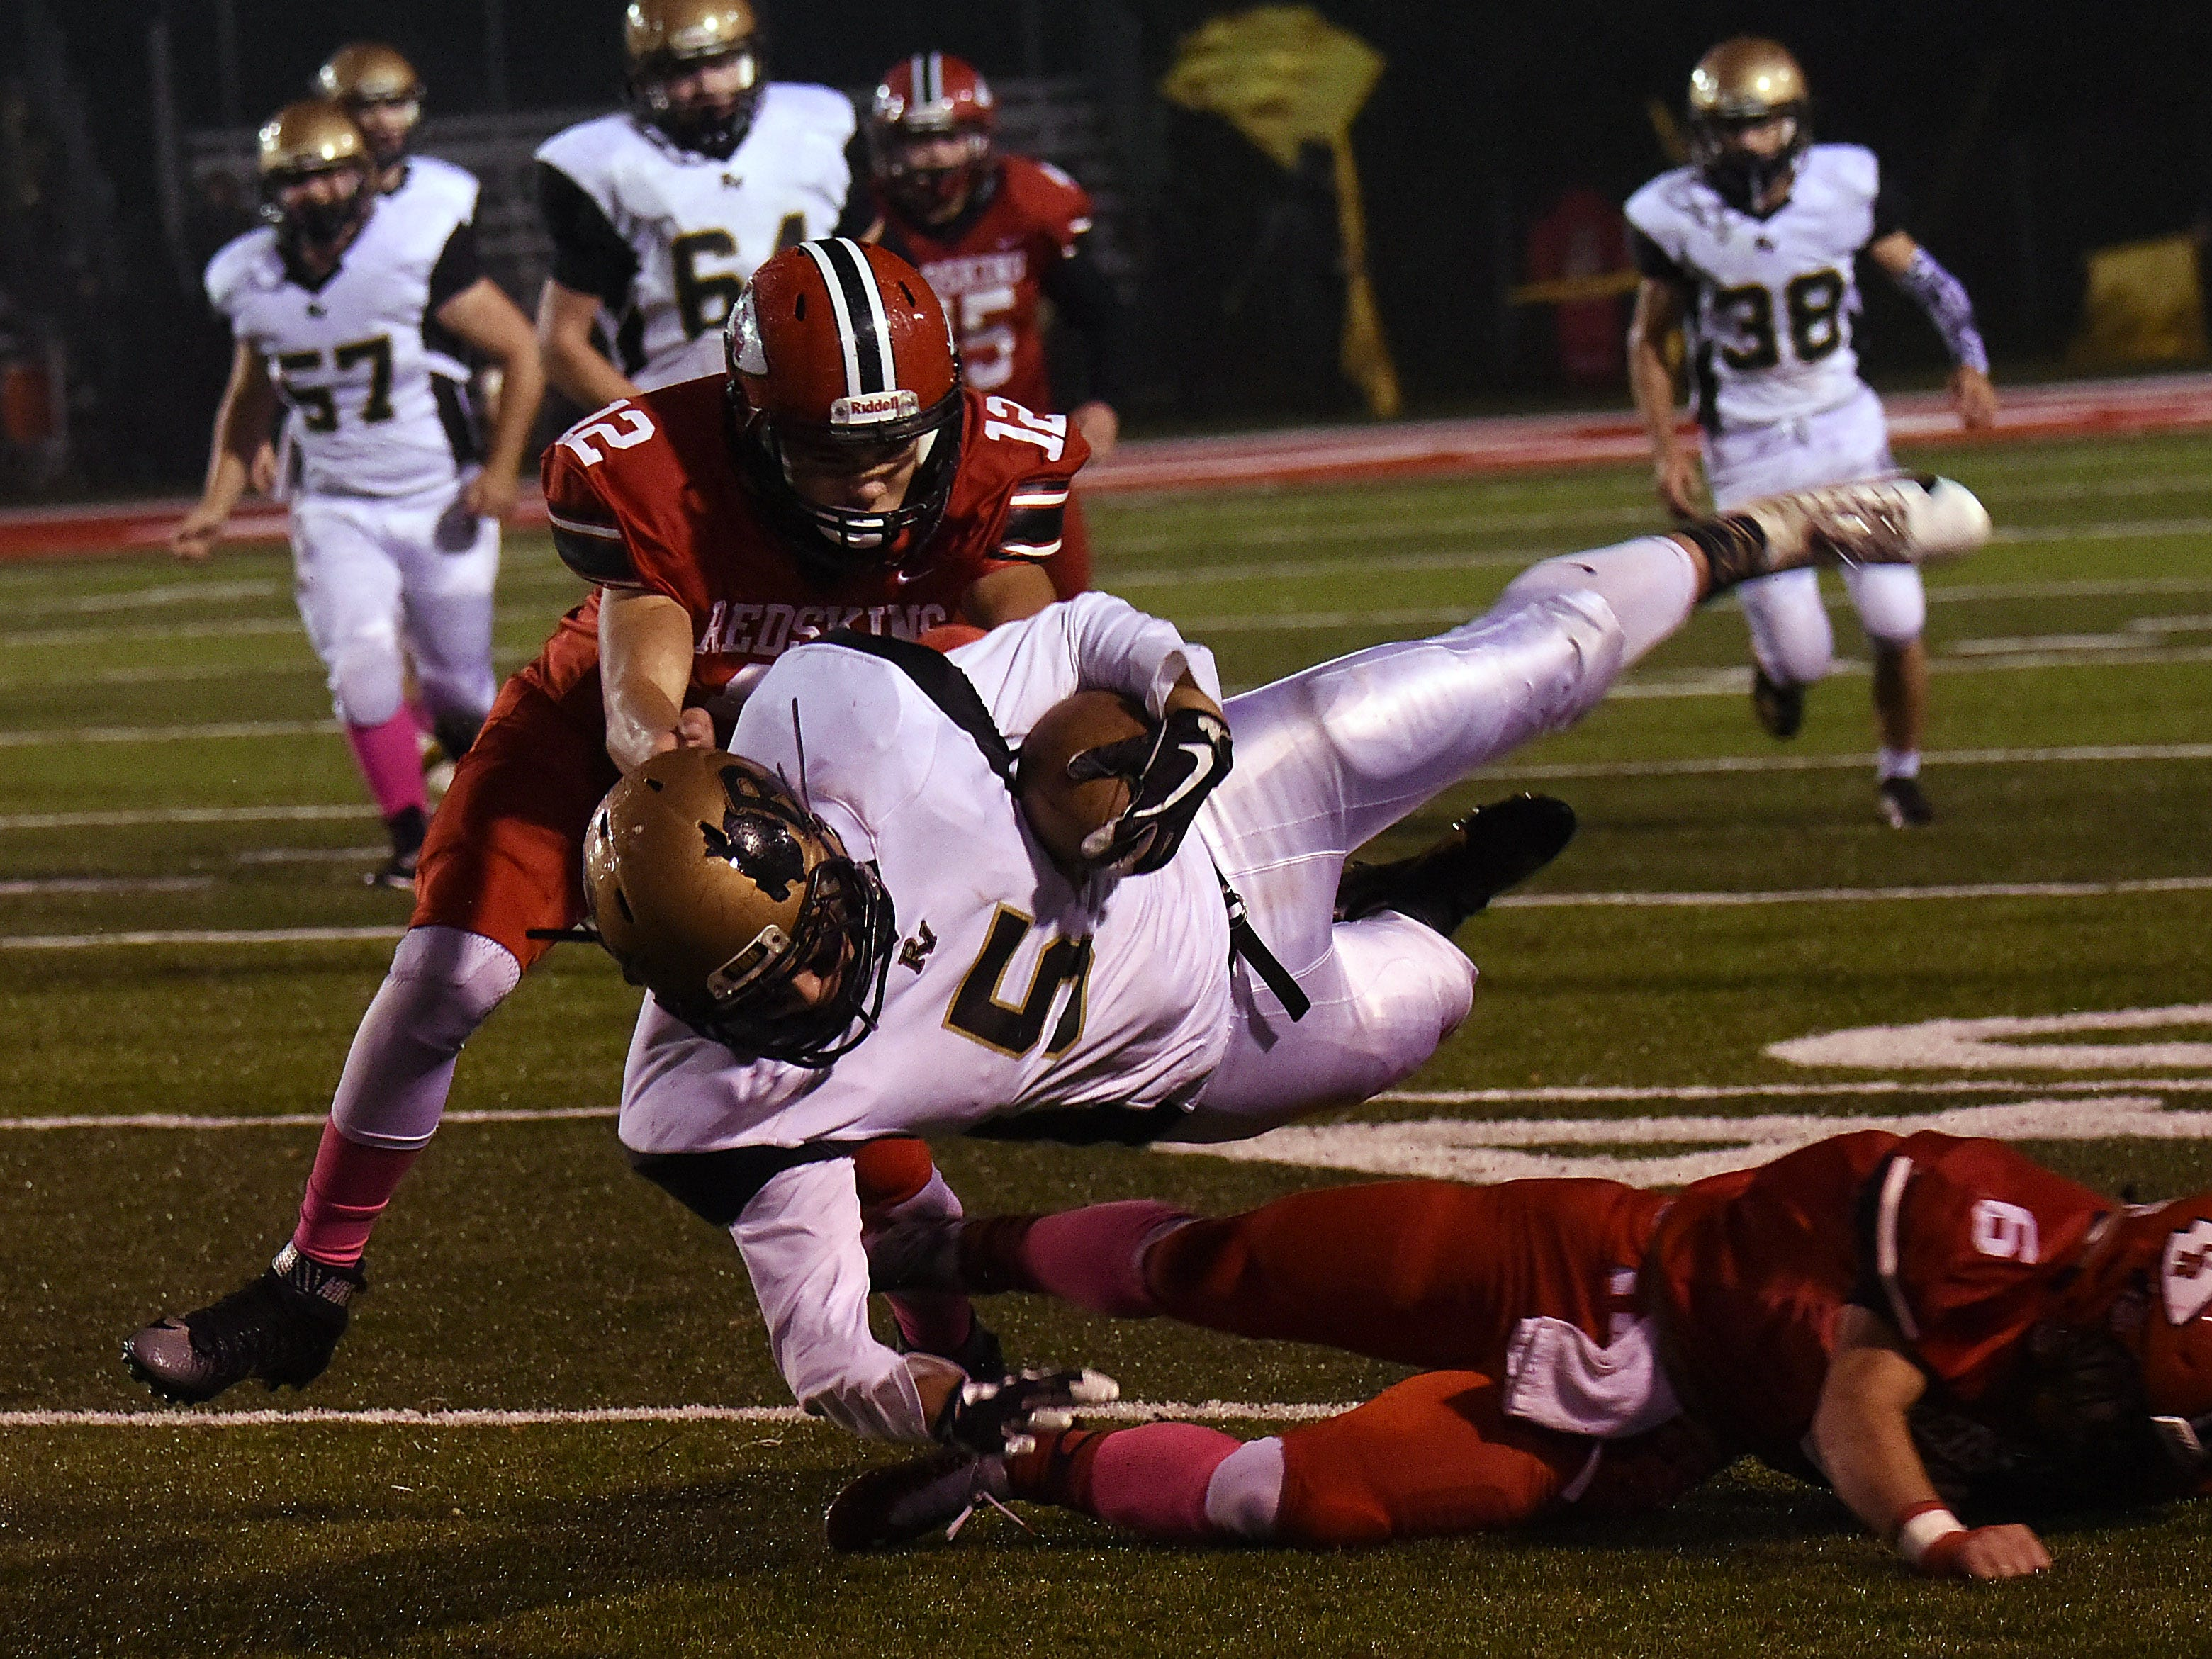 Coshocton freshman Isaac Shook (left) and senior Andrew Kittell (right) bring down River View ball carrier senior Eric Jacobs. Coshocton defeated the Bears 29-14 on Friday, Oct. 26, 2018.